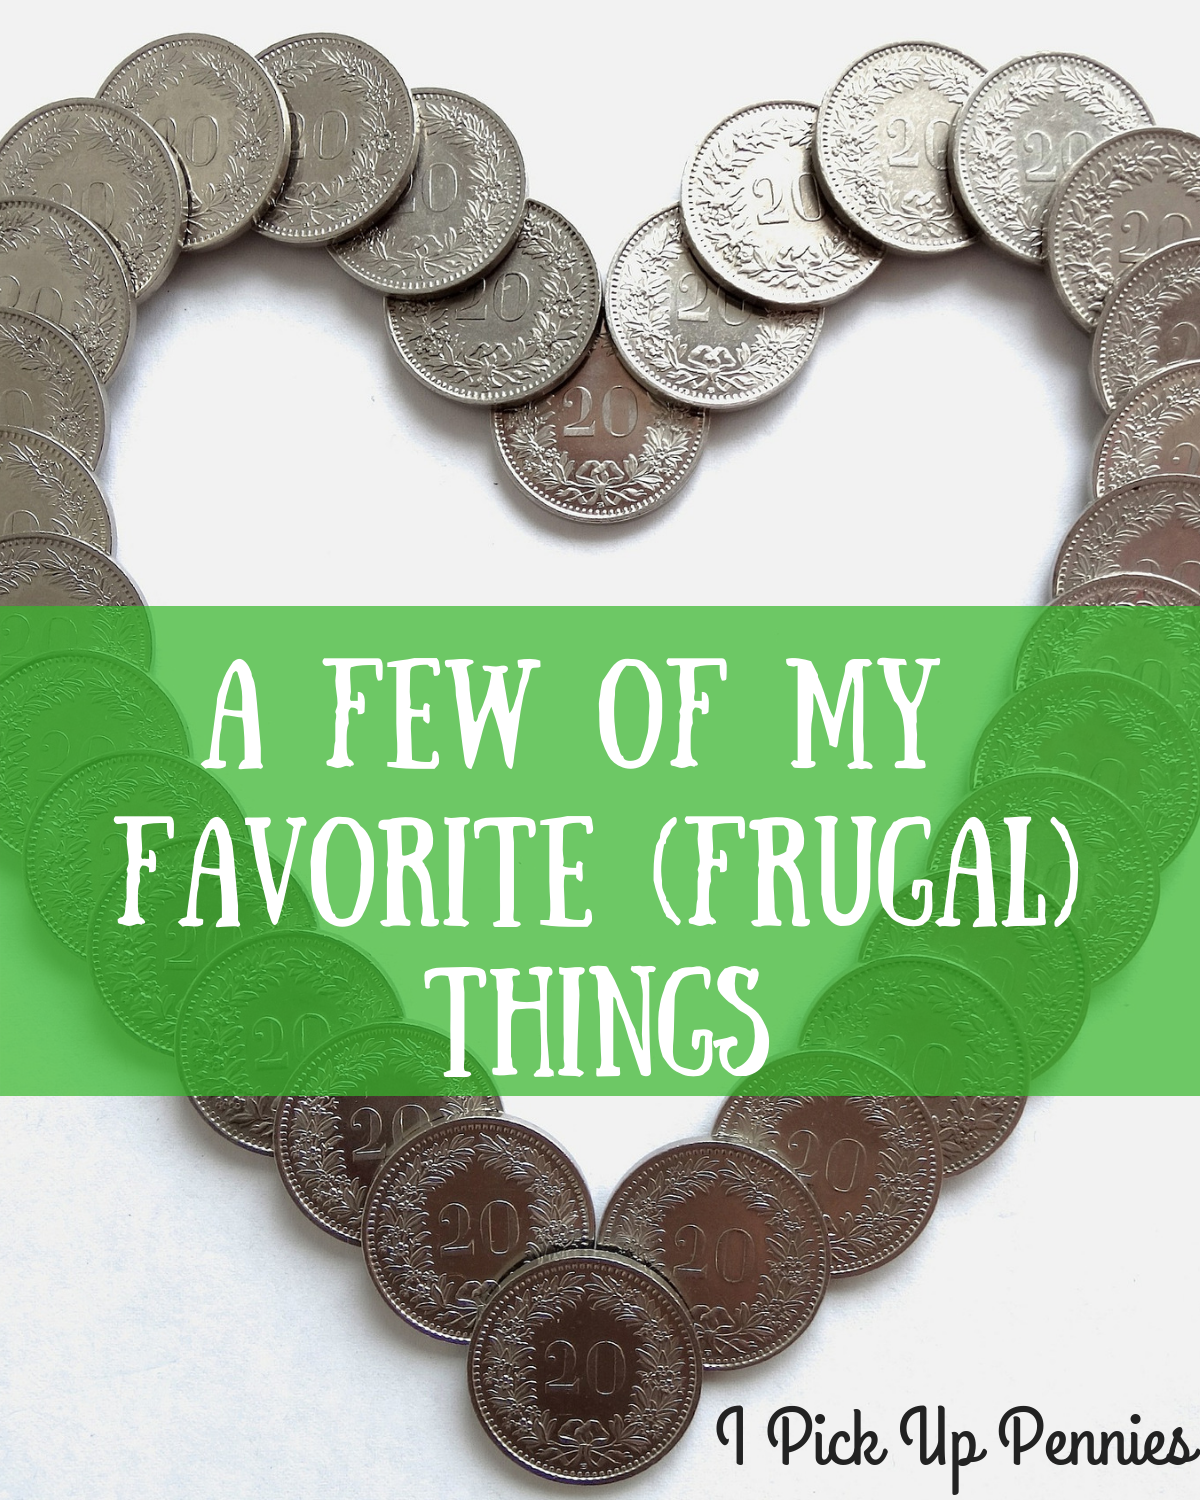 Great list of frugal things to save $